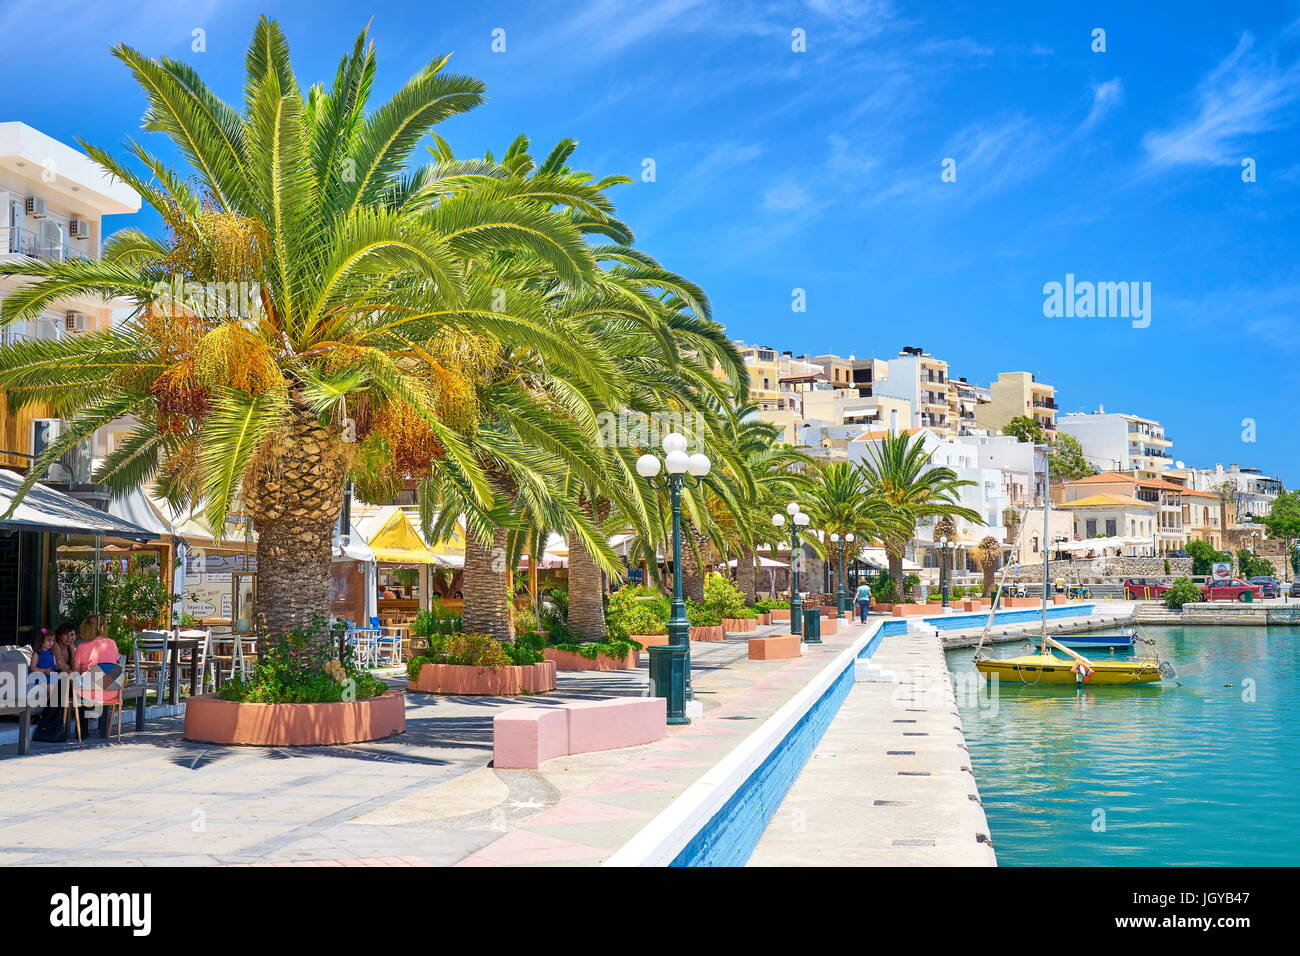 Promenade in Sitia, Crete Island, Greece - Stock Image